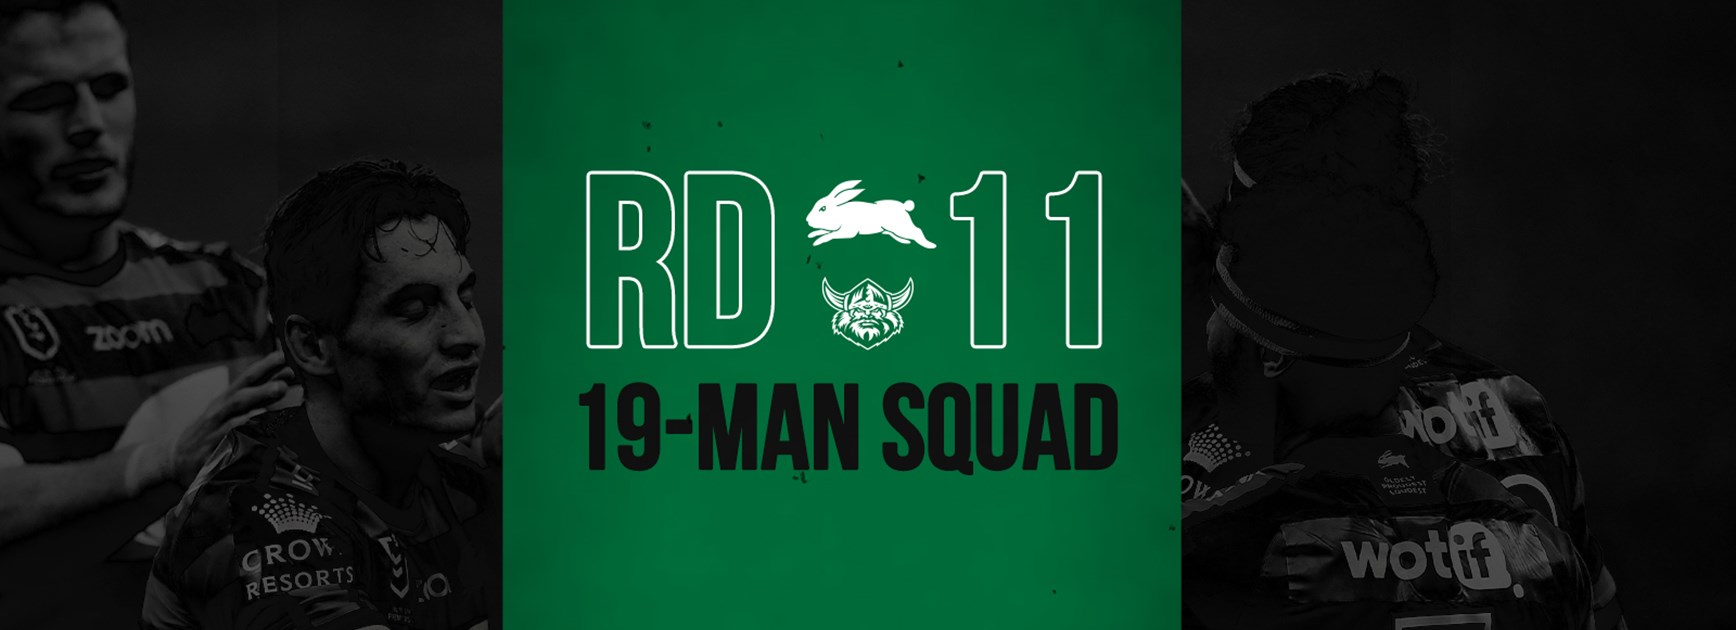 Rabbitohs update 19-man squad for round 11